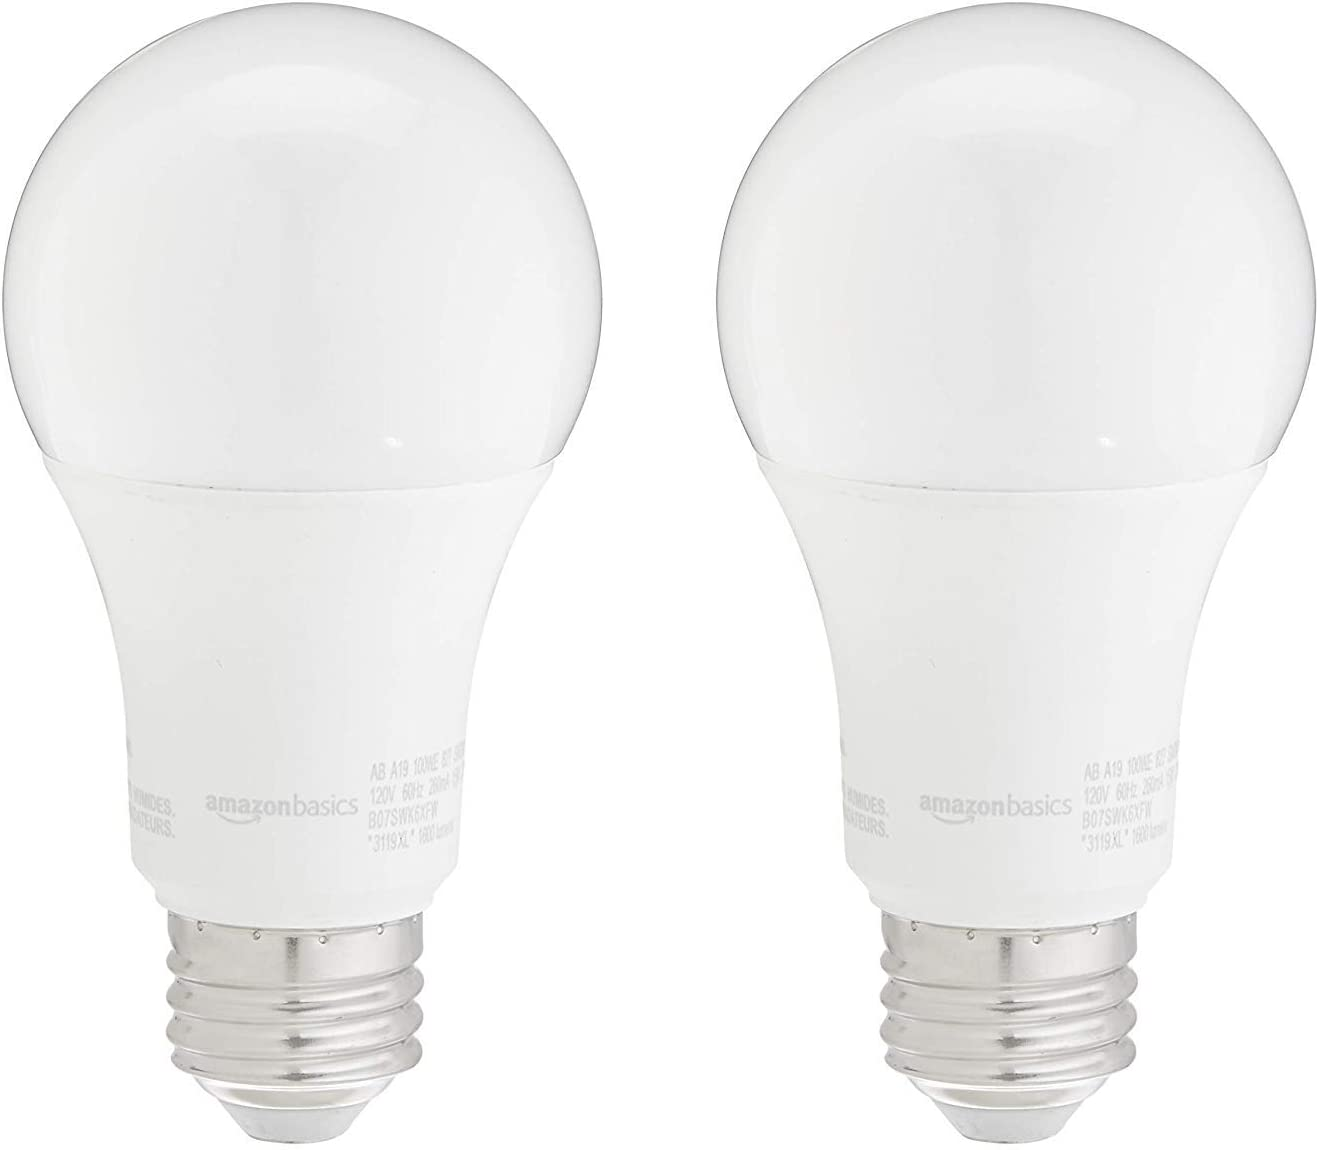 AmazonBasics 100W Equivalent, Soft White, Non-Dimmable, 10,000 Hour Lifetime, A19 LED Light Bulb | 2-Pack